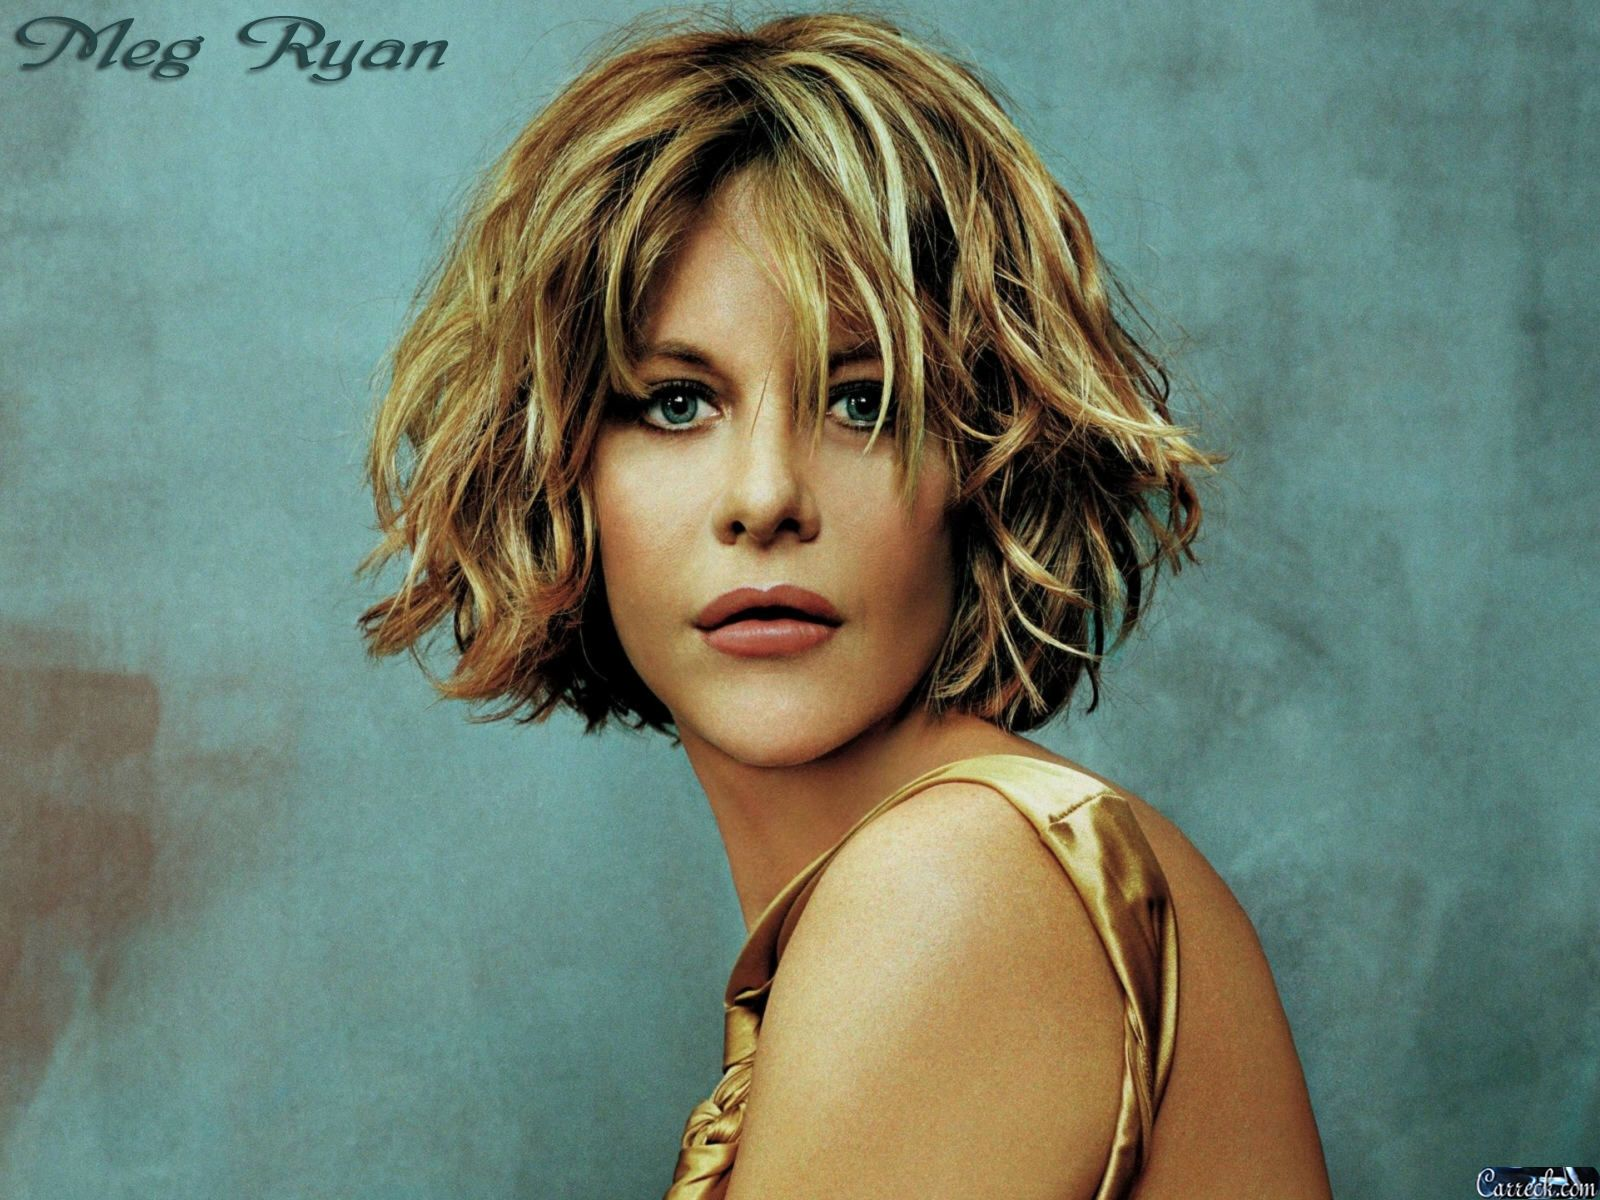 Meg Ryan Meg Ryan Meg Ryan Hair Pinterest Meg Ryan And Hair